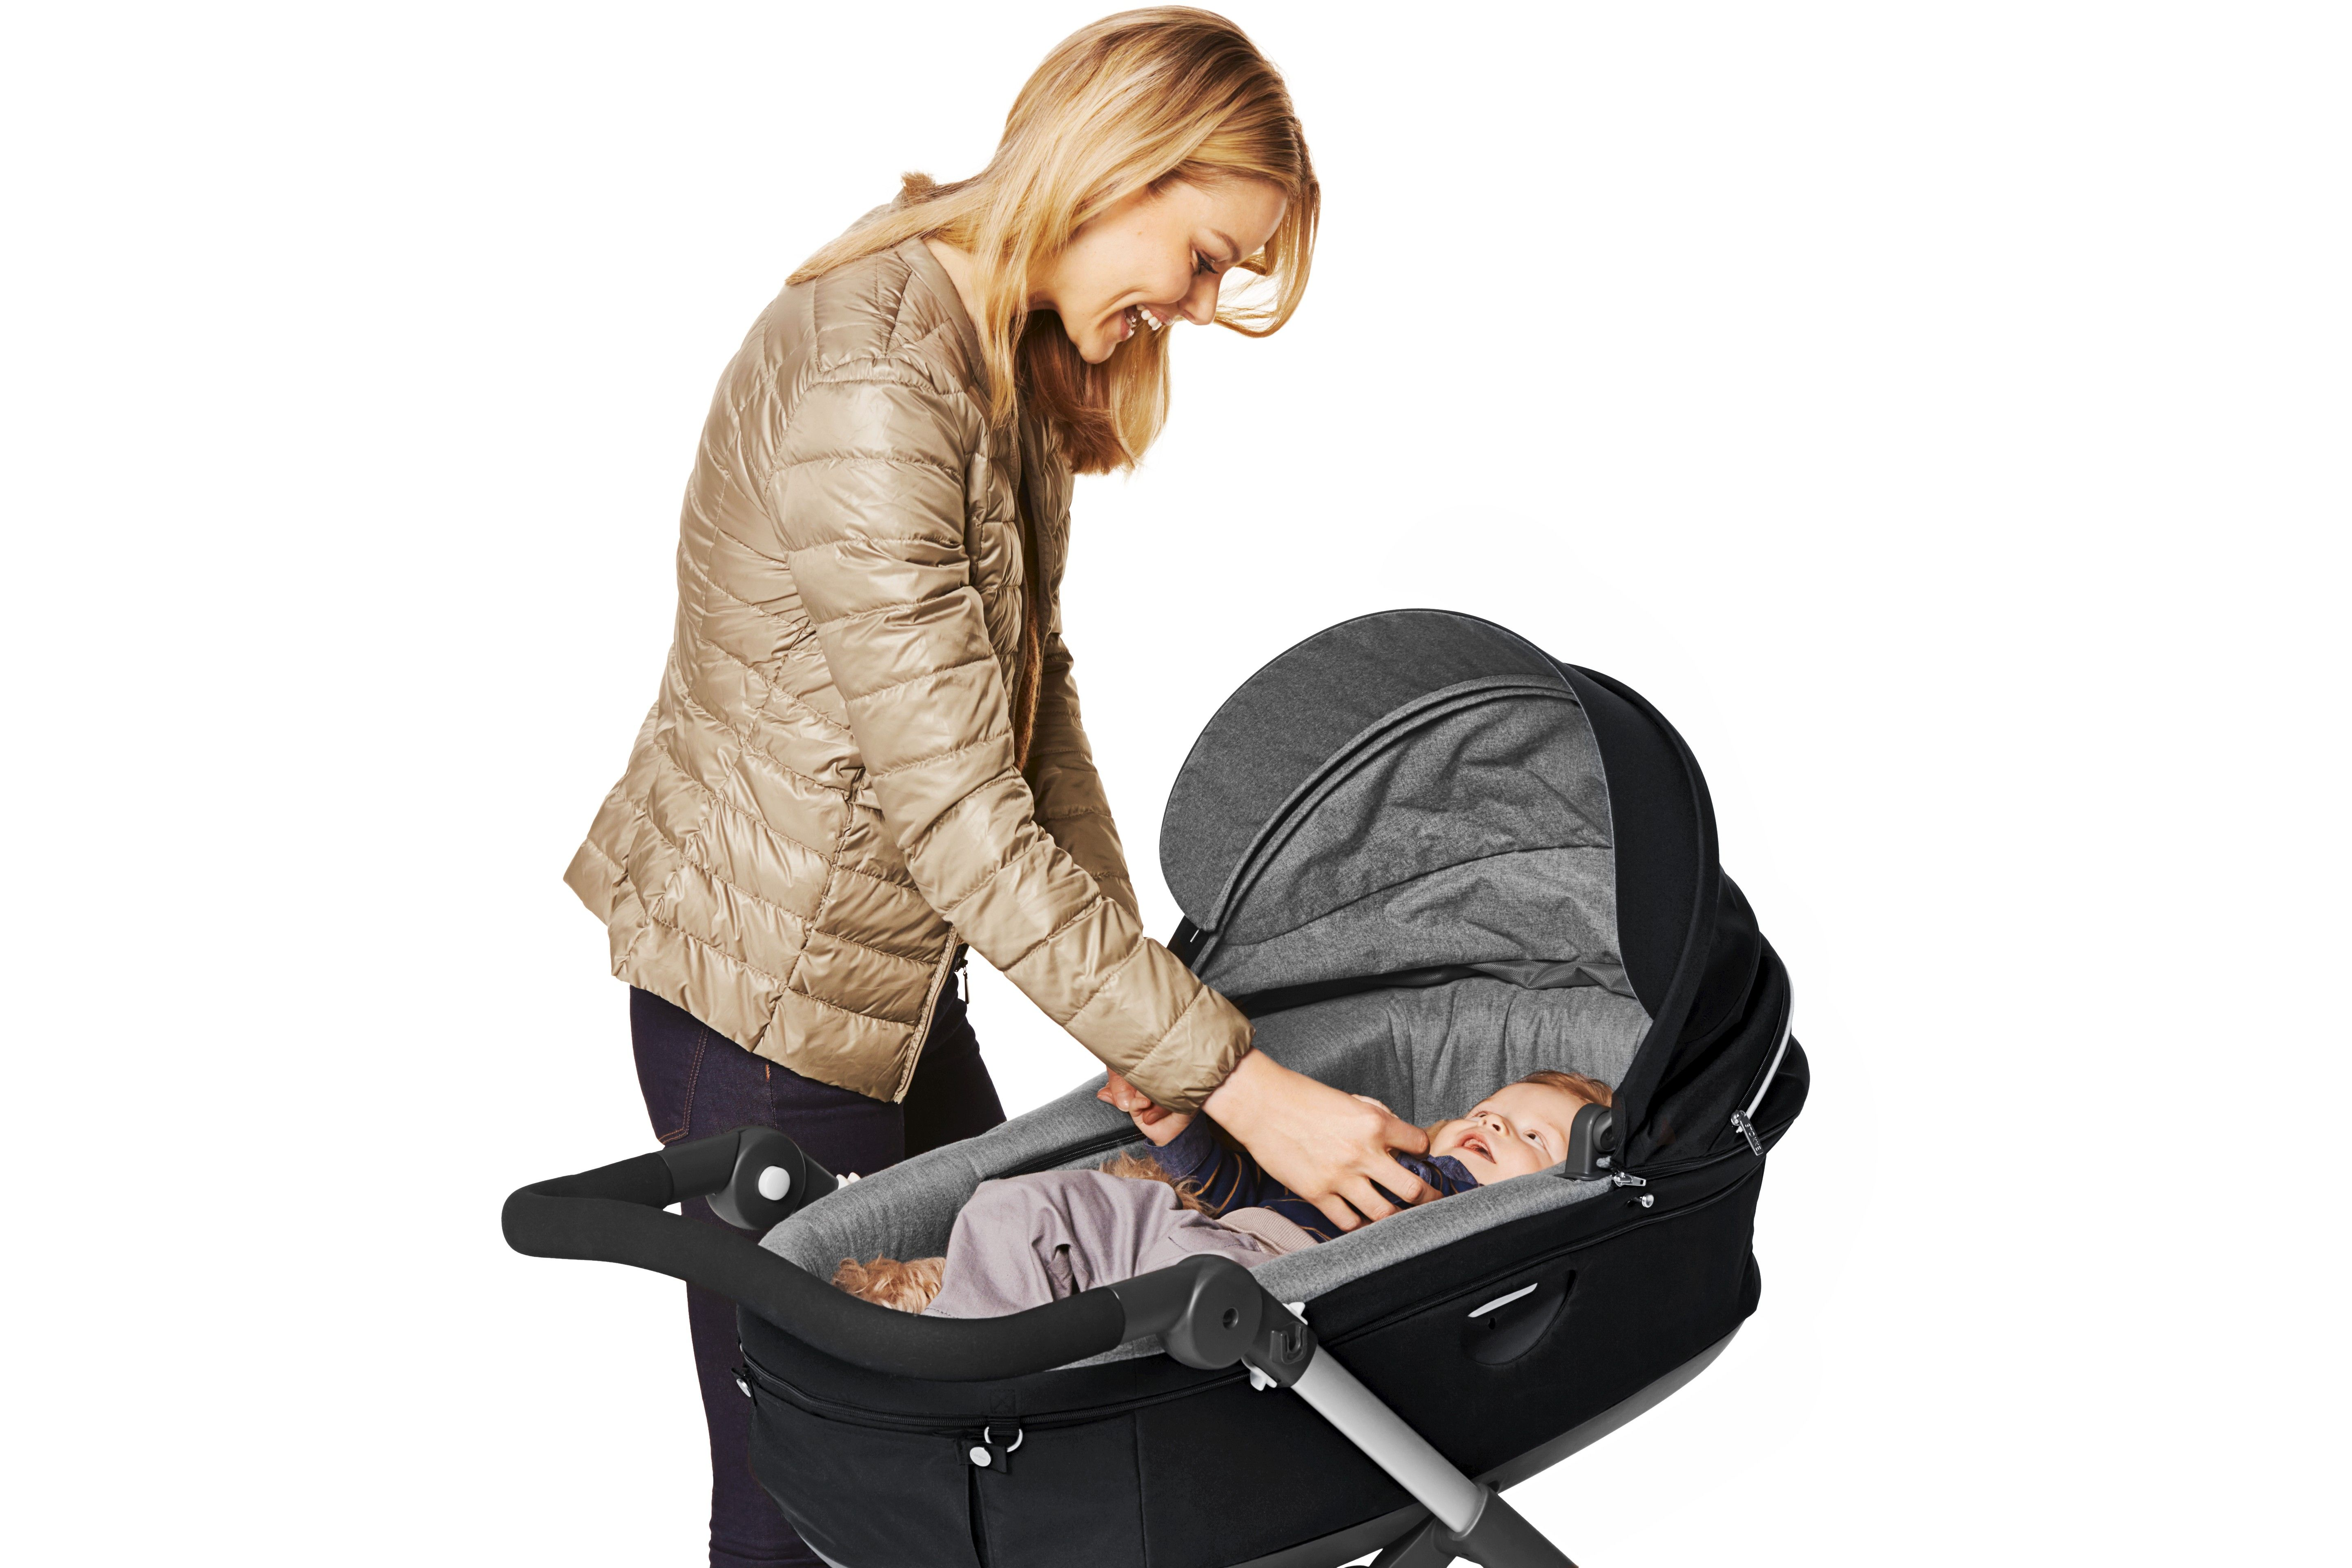 Like all Stokke® strollers, the carry cot and seat positions of new Stokke® Trailz™ lift your baby higher to encourage connection between parent and child.